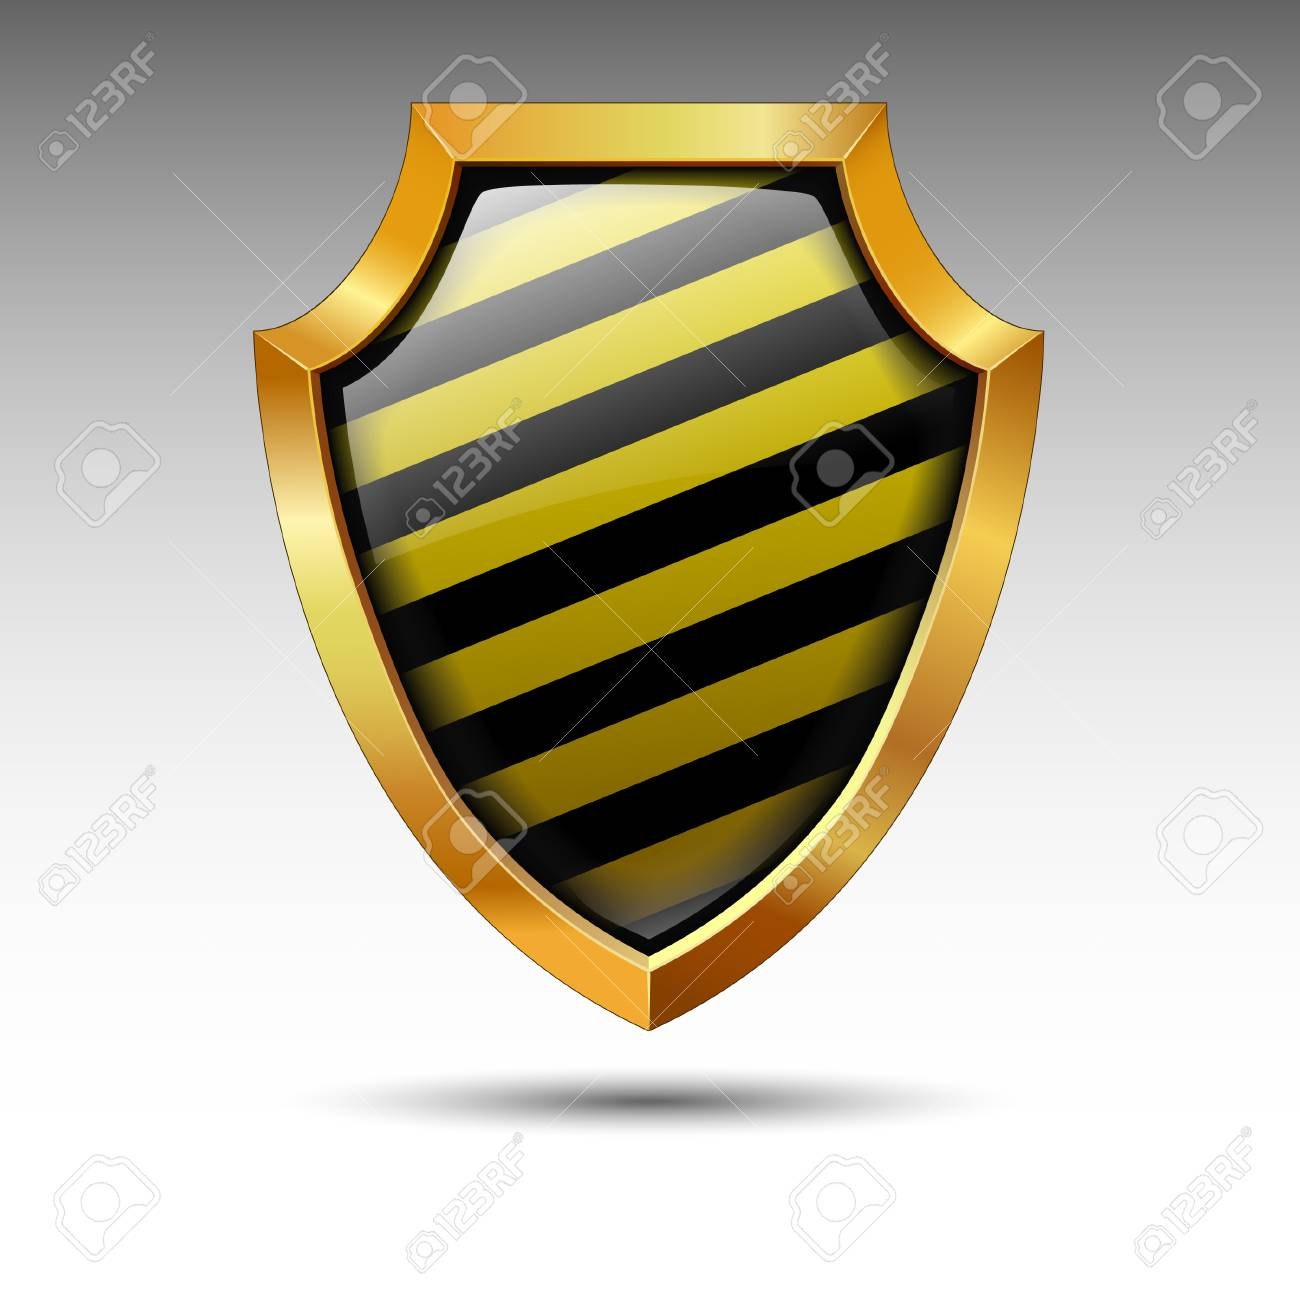 Shield on a white background. Stock Vector - 8169968